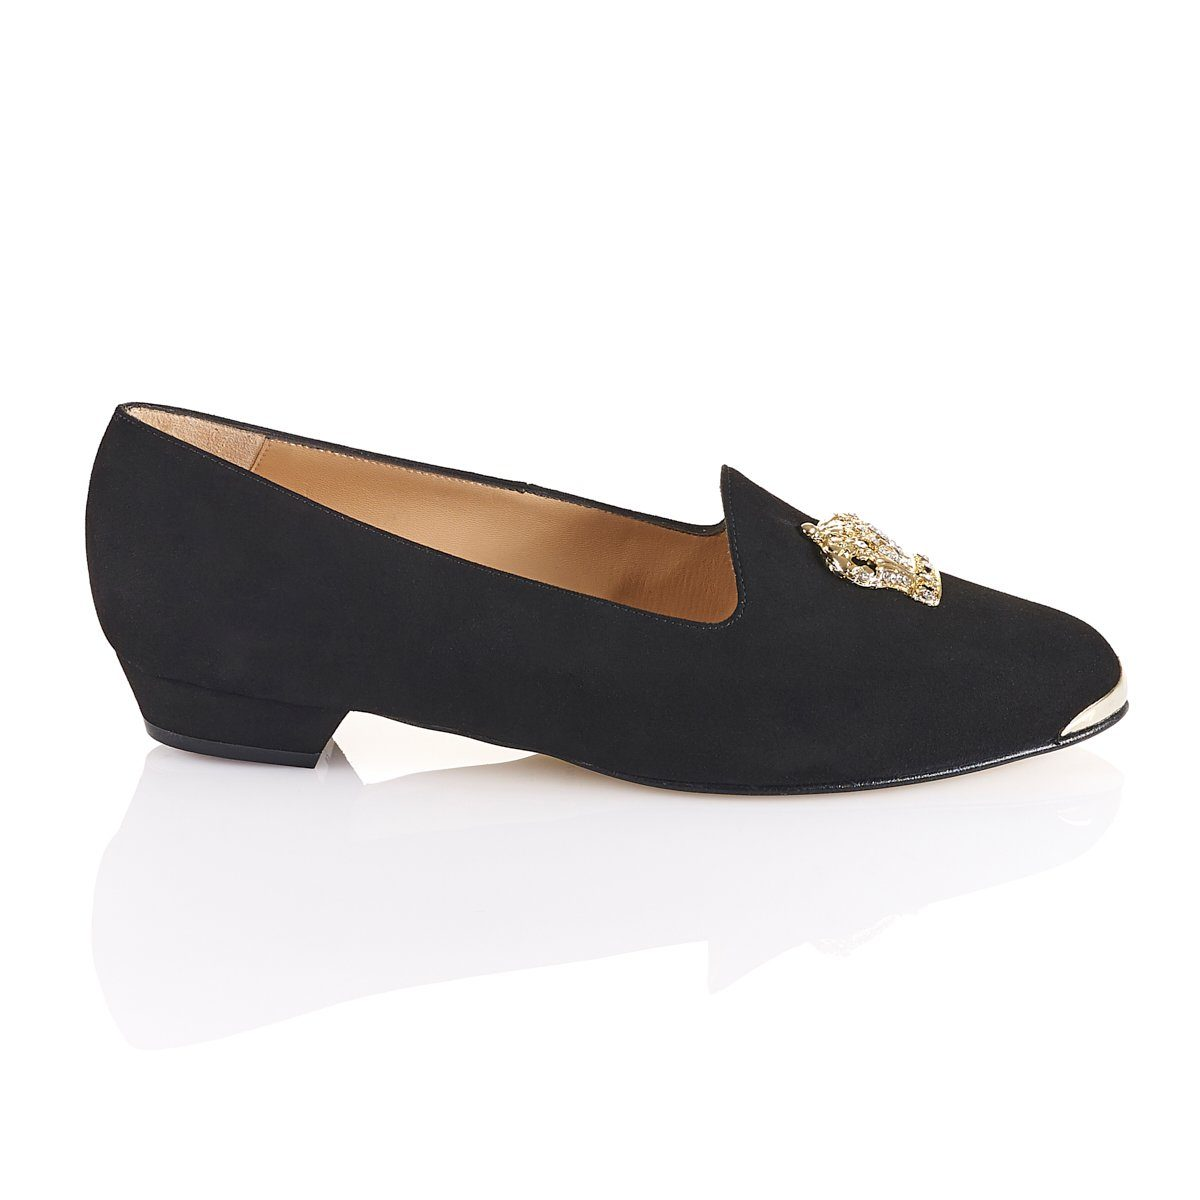 Sample - She Reigns Luxury Flats - Sizes 4, 6, 7 - Shoes by Shaherazad